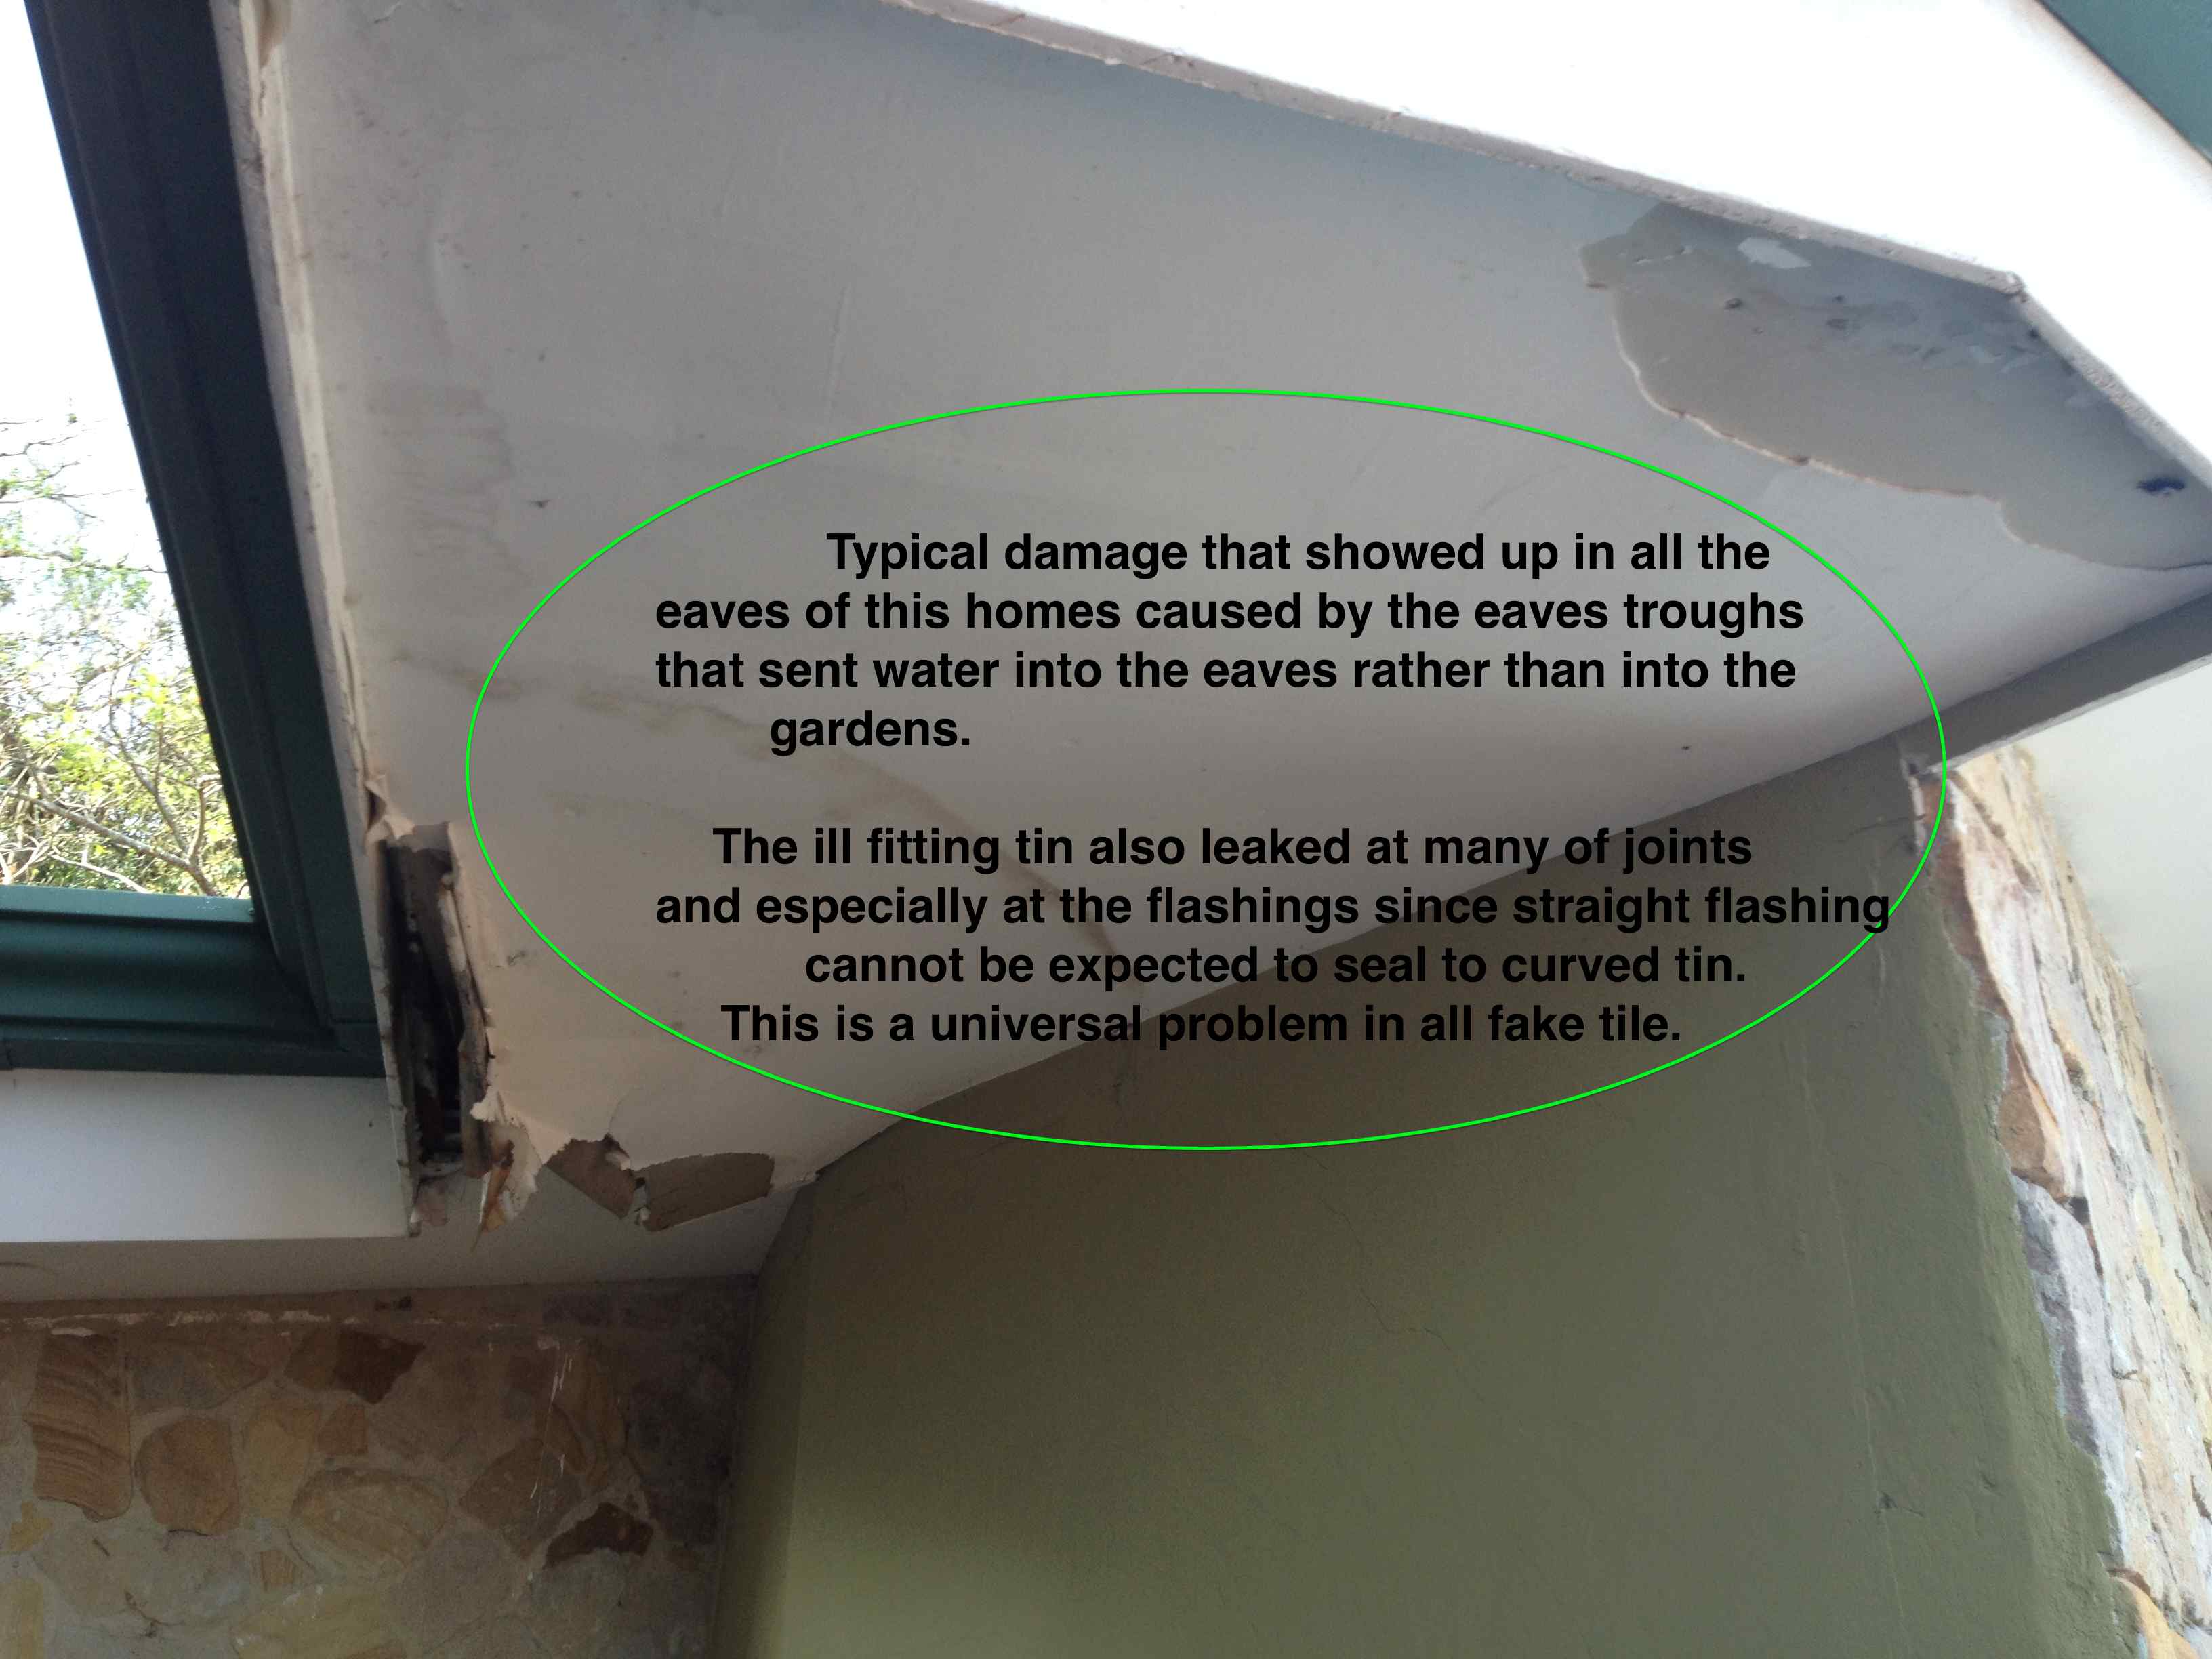 Soffit damage caused by frequent leaking from bad fitting Zinc Teja